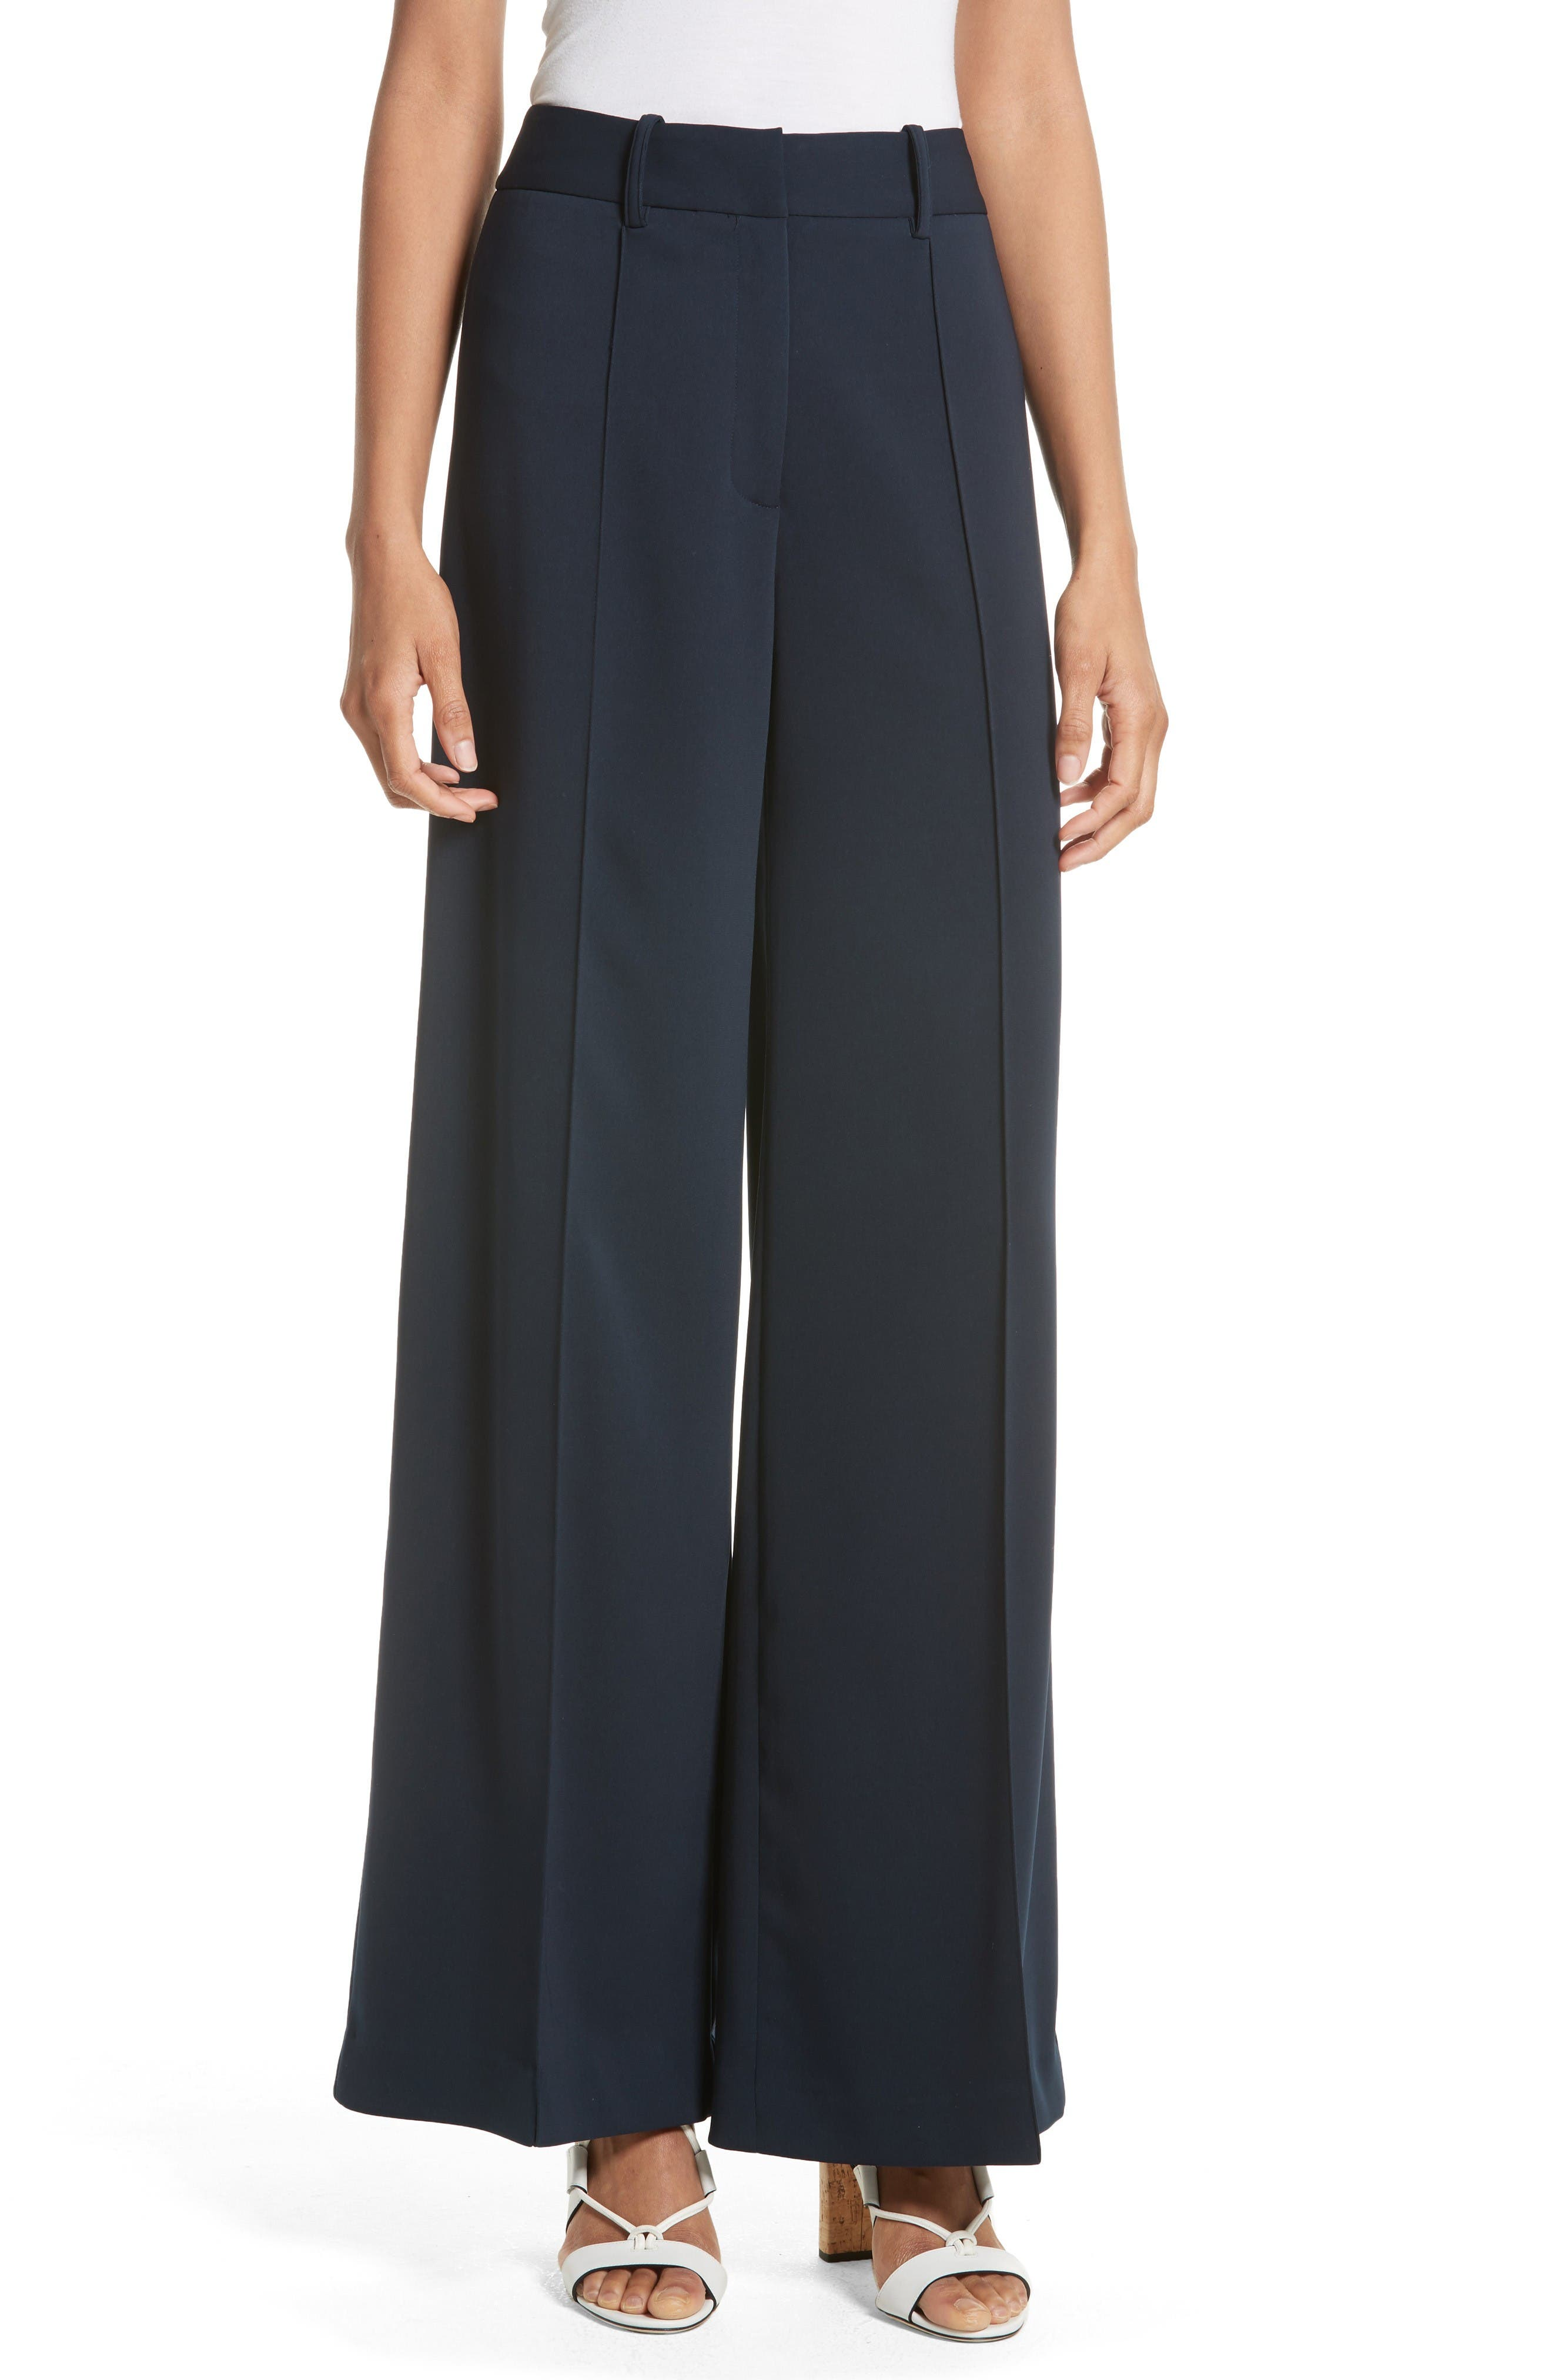 Milly 'Hayden' Wide Leg Trousers